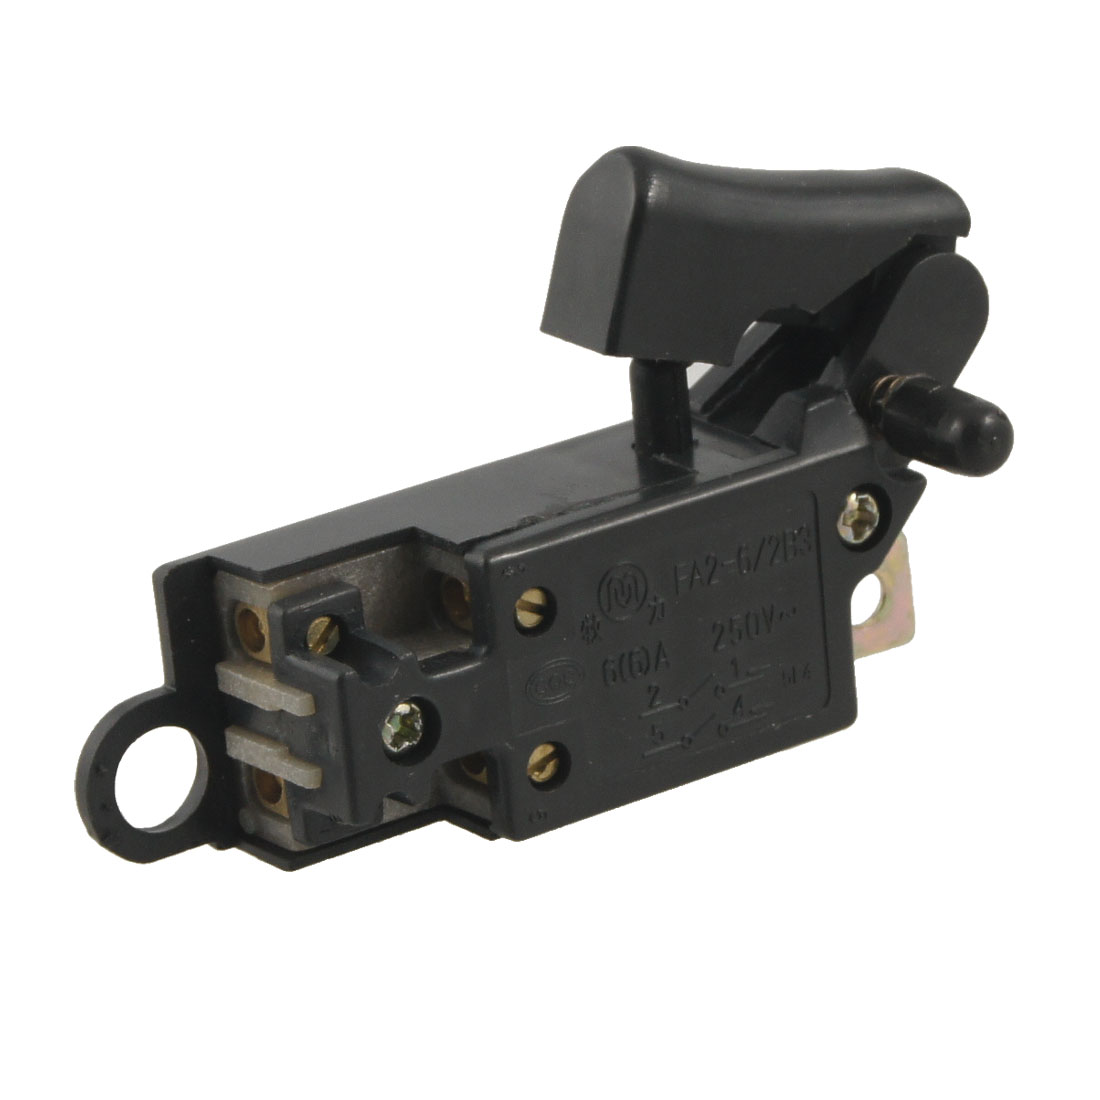 FA2-6/2B3 DPST Momentary Push Trigger Switch AC 250V 6A